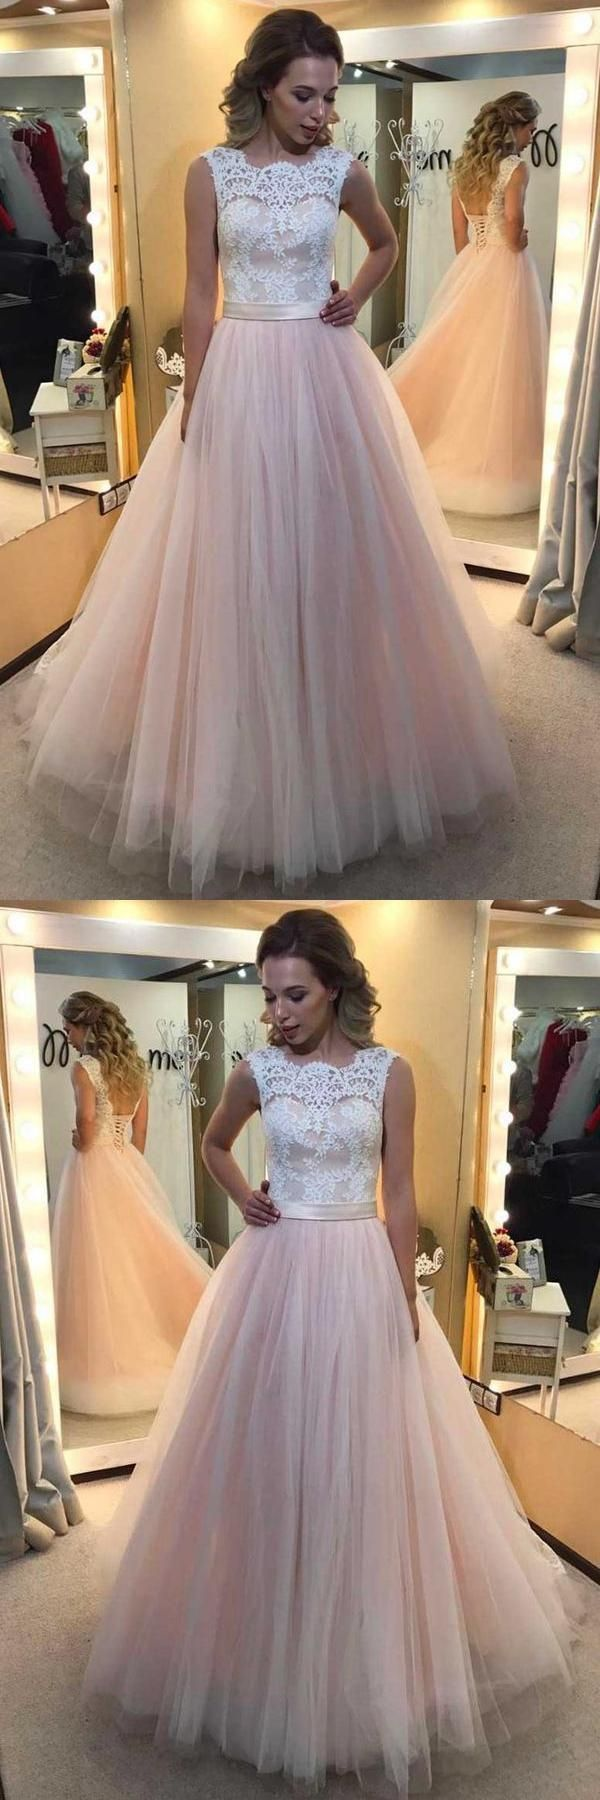 Outlet magnificent lace white prom dresses light pink prom dresses